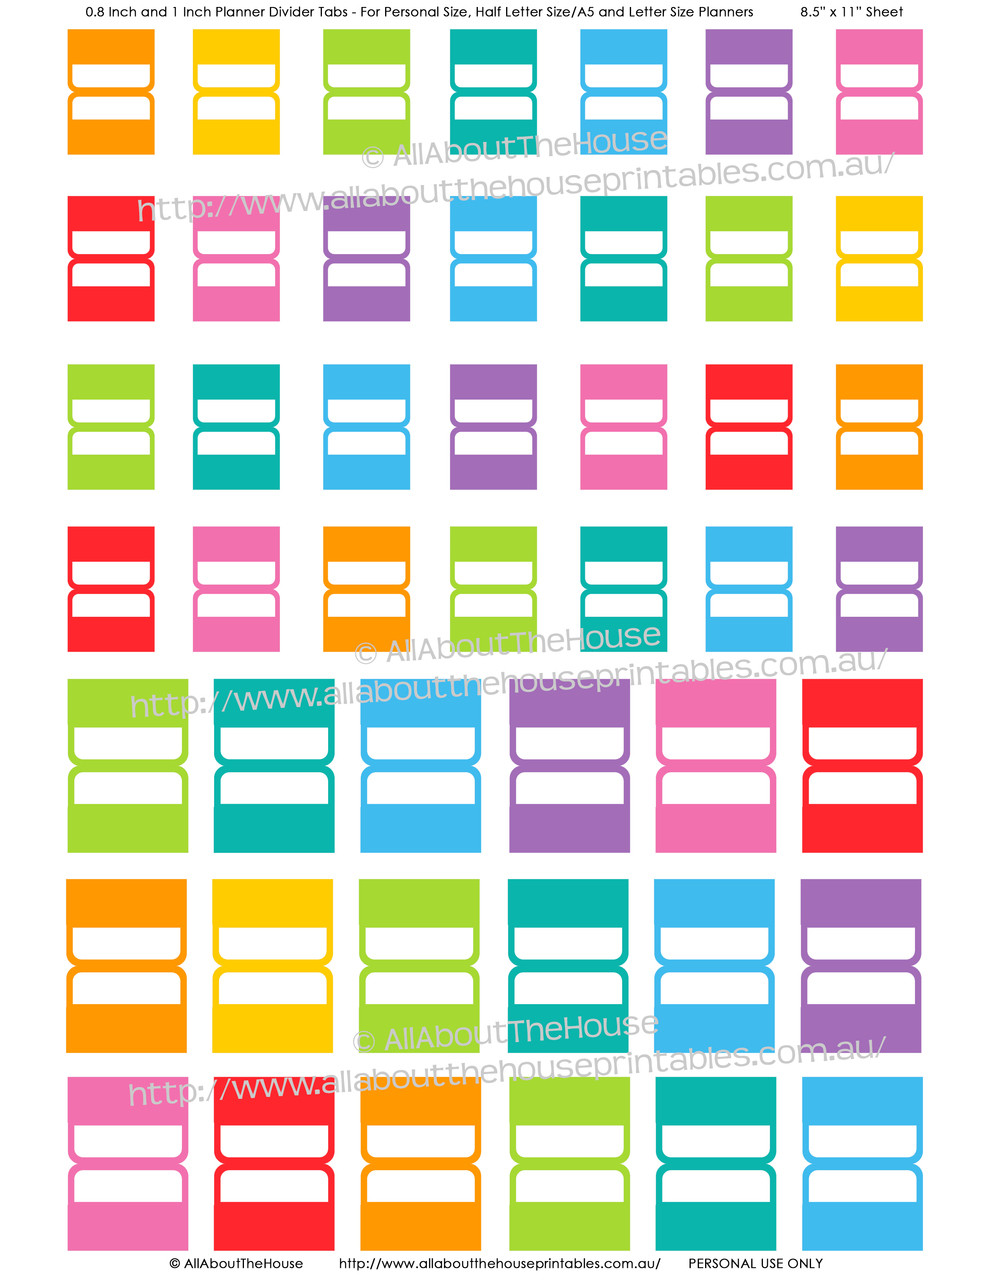 photograph relating to Printable Tabs named Printable Planner Tabs - Rainbow Everyday and Weekly Planner Include Upon - Erin Condren Sizing Suitable - Plan Business